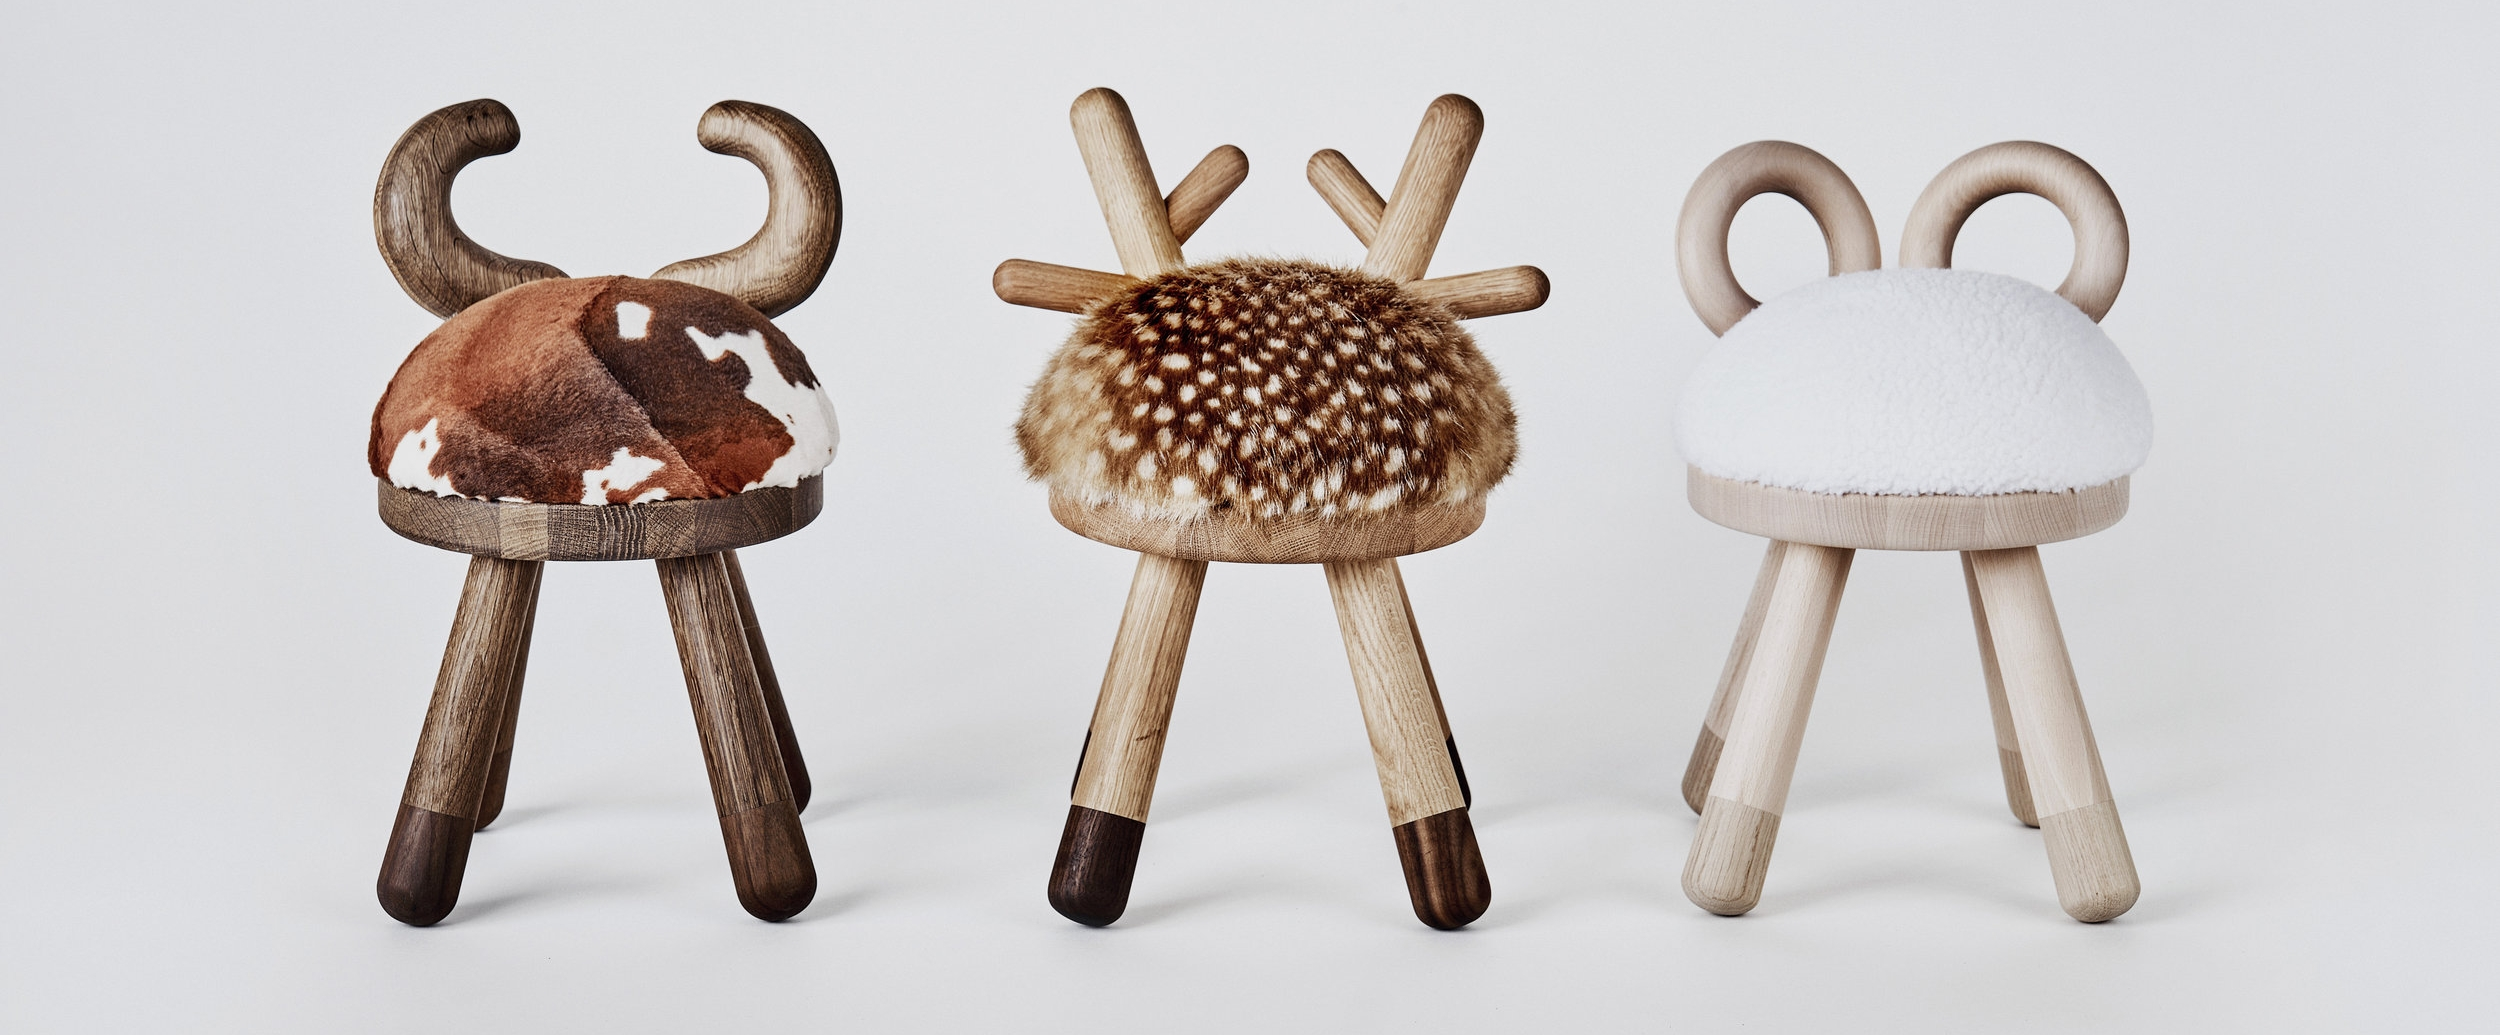 Cow, Bambi and Sheep chairs